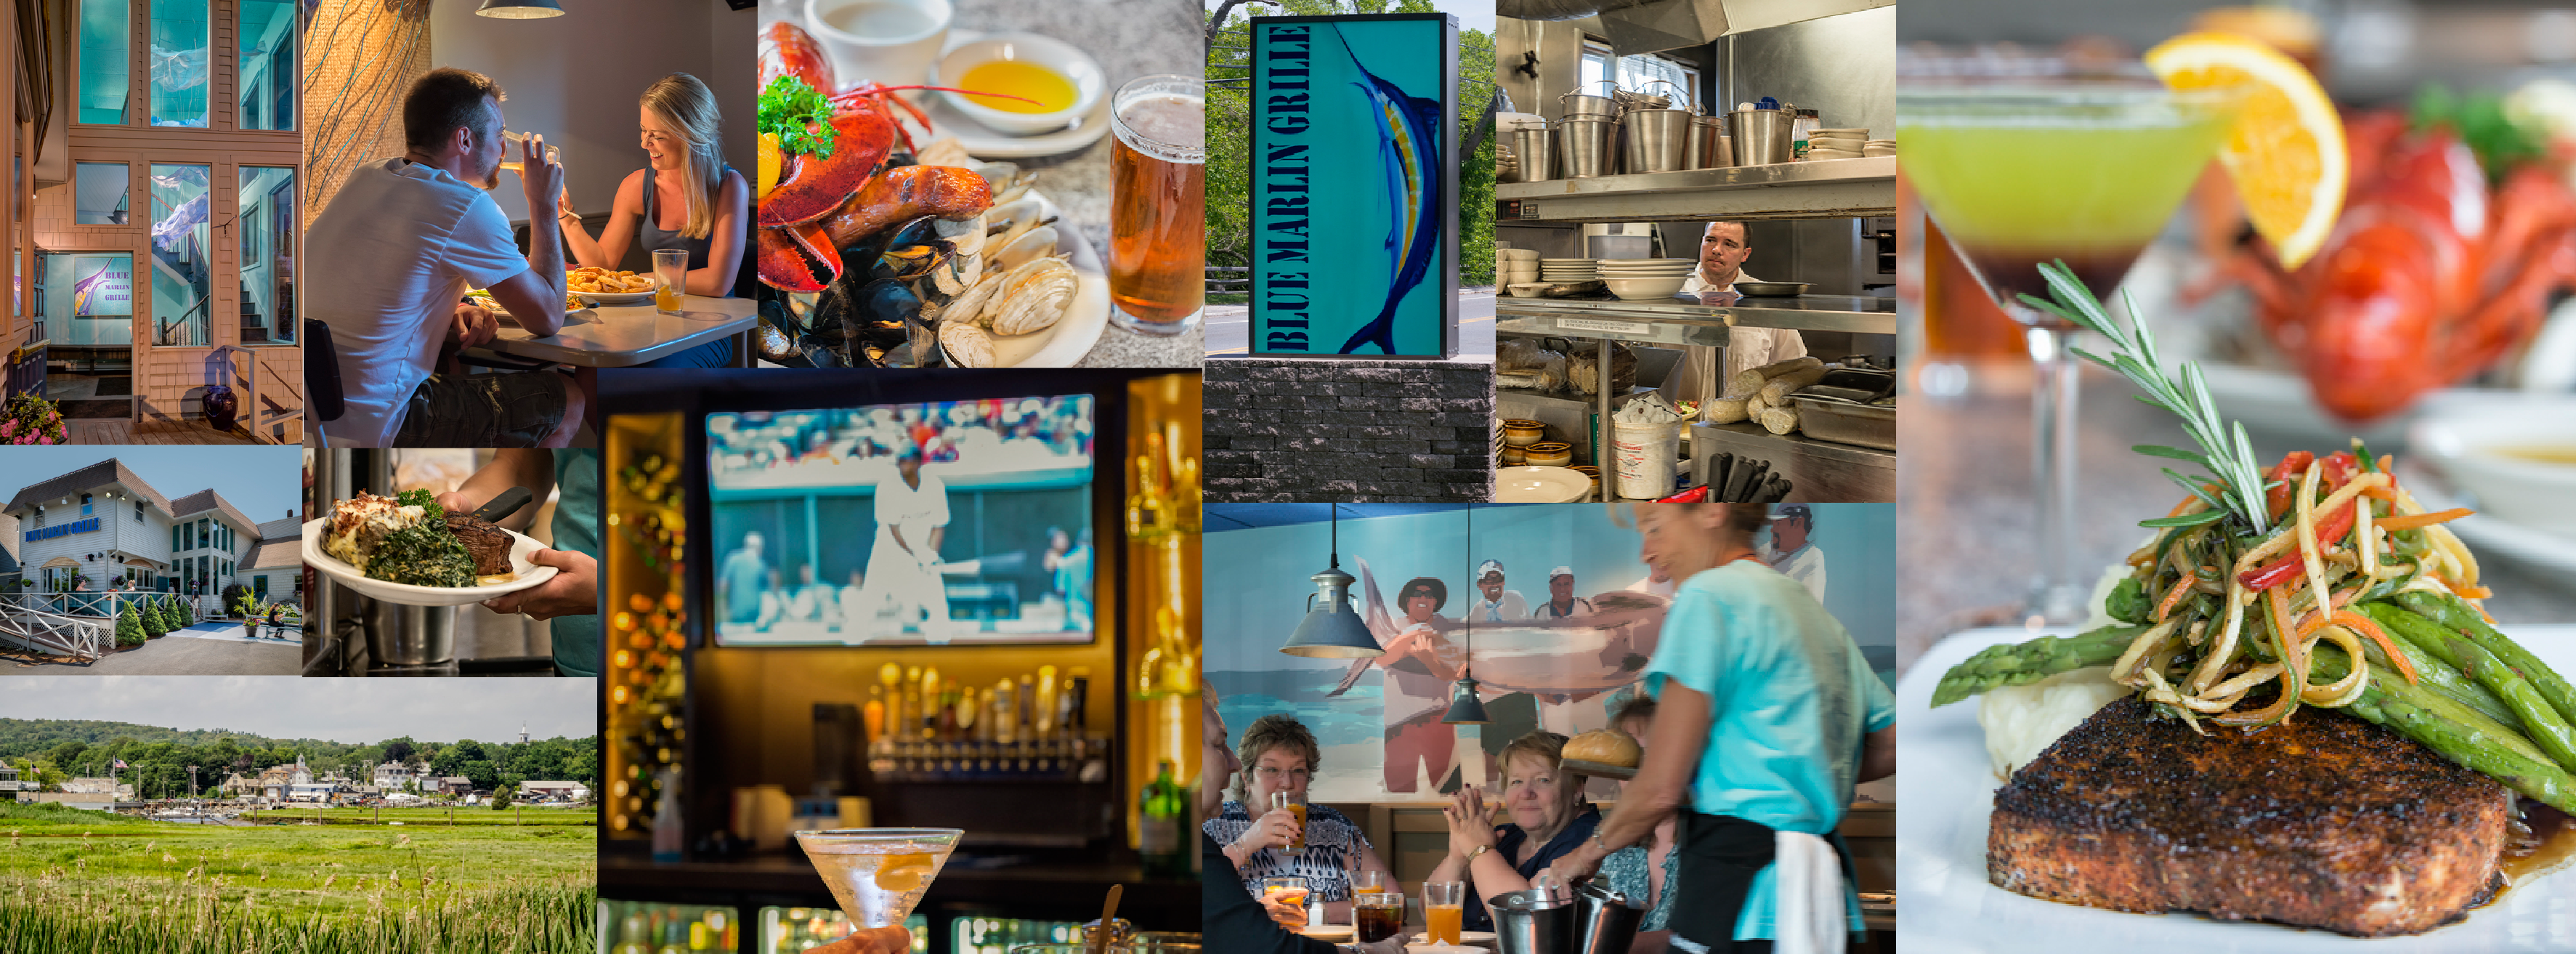 Blue marlin grille essex ma picture 82